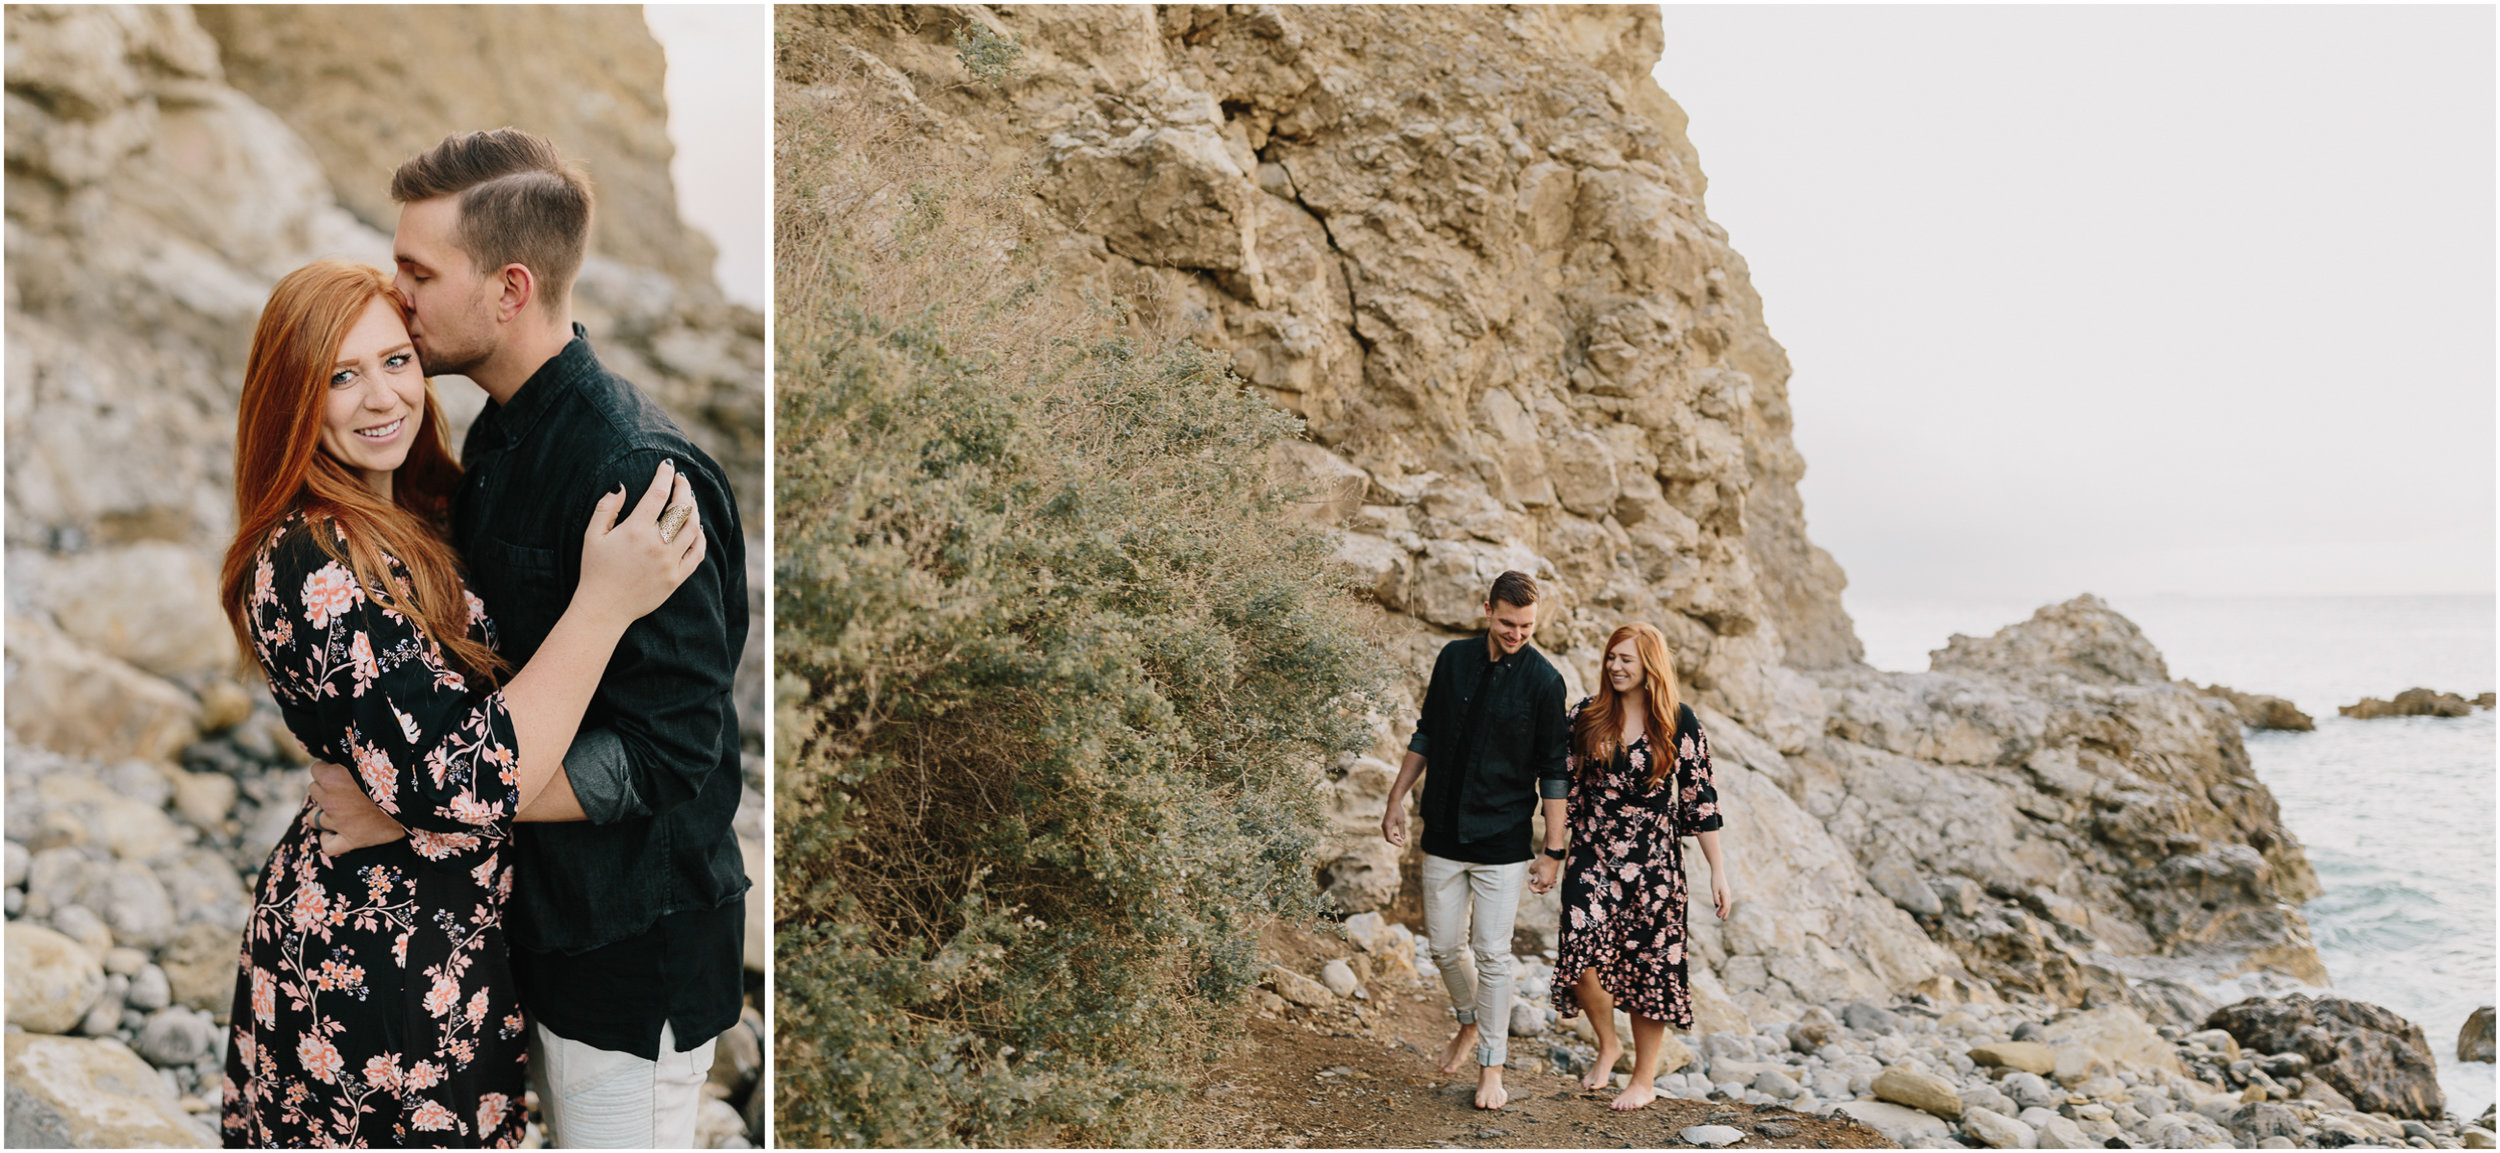 alyssa barletter photography terranea cove resort california sunrise anniversary engagement-111.jpg